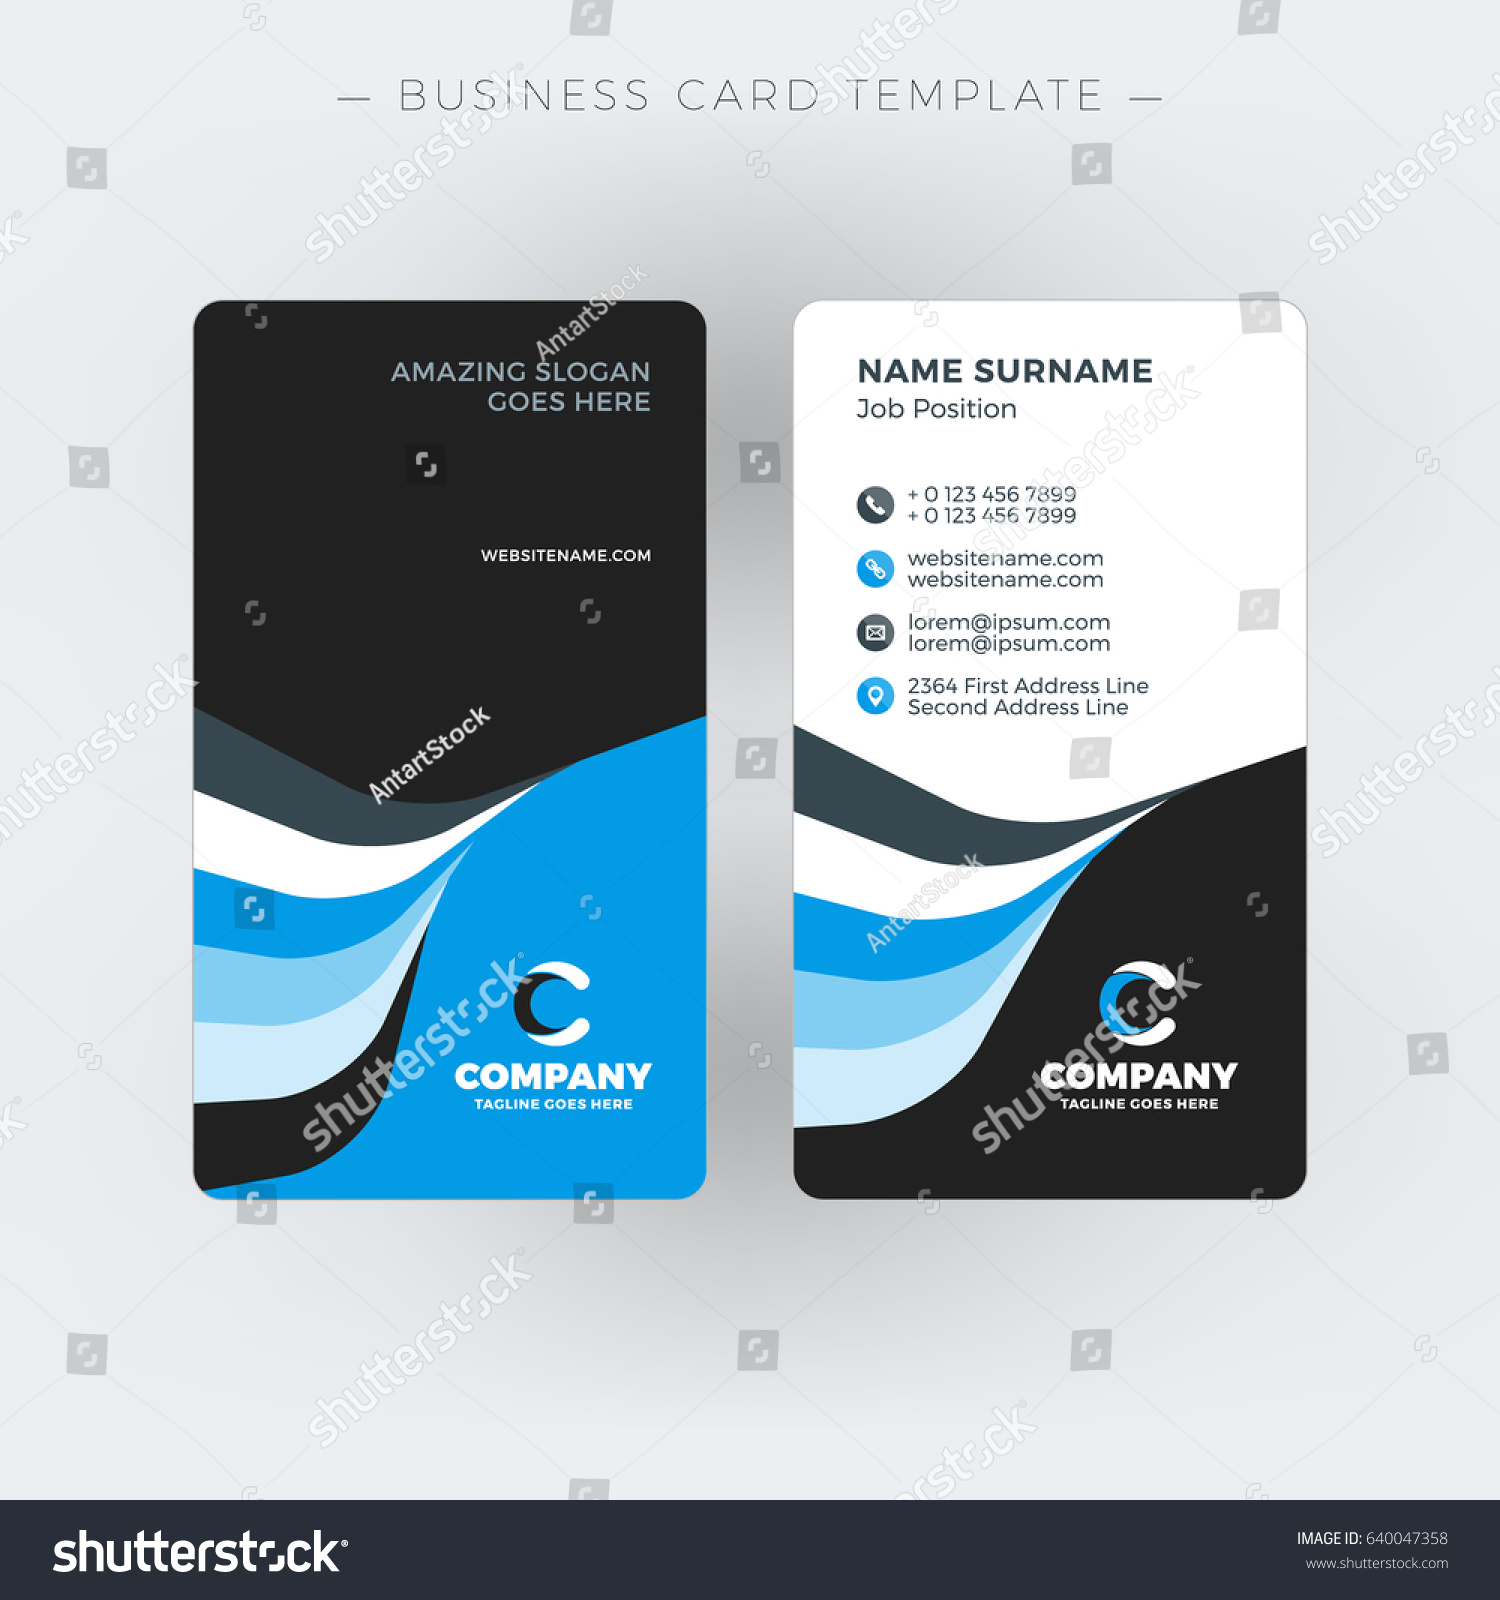 Vertical Doublesided Business Card Template Vector Stock Vector ...